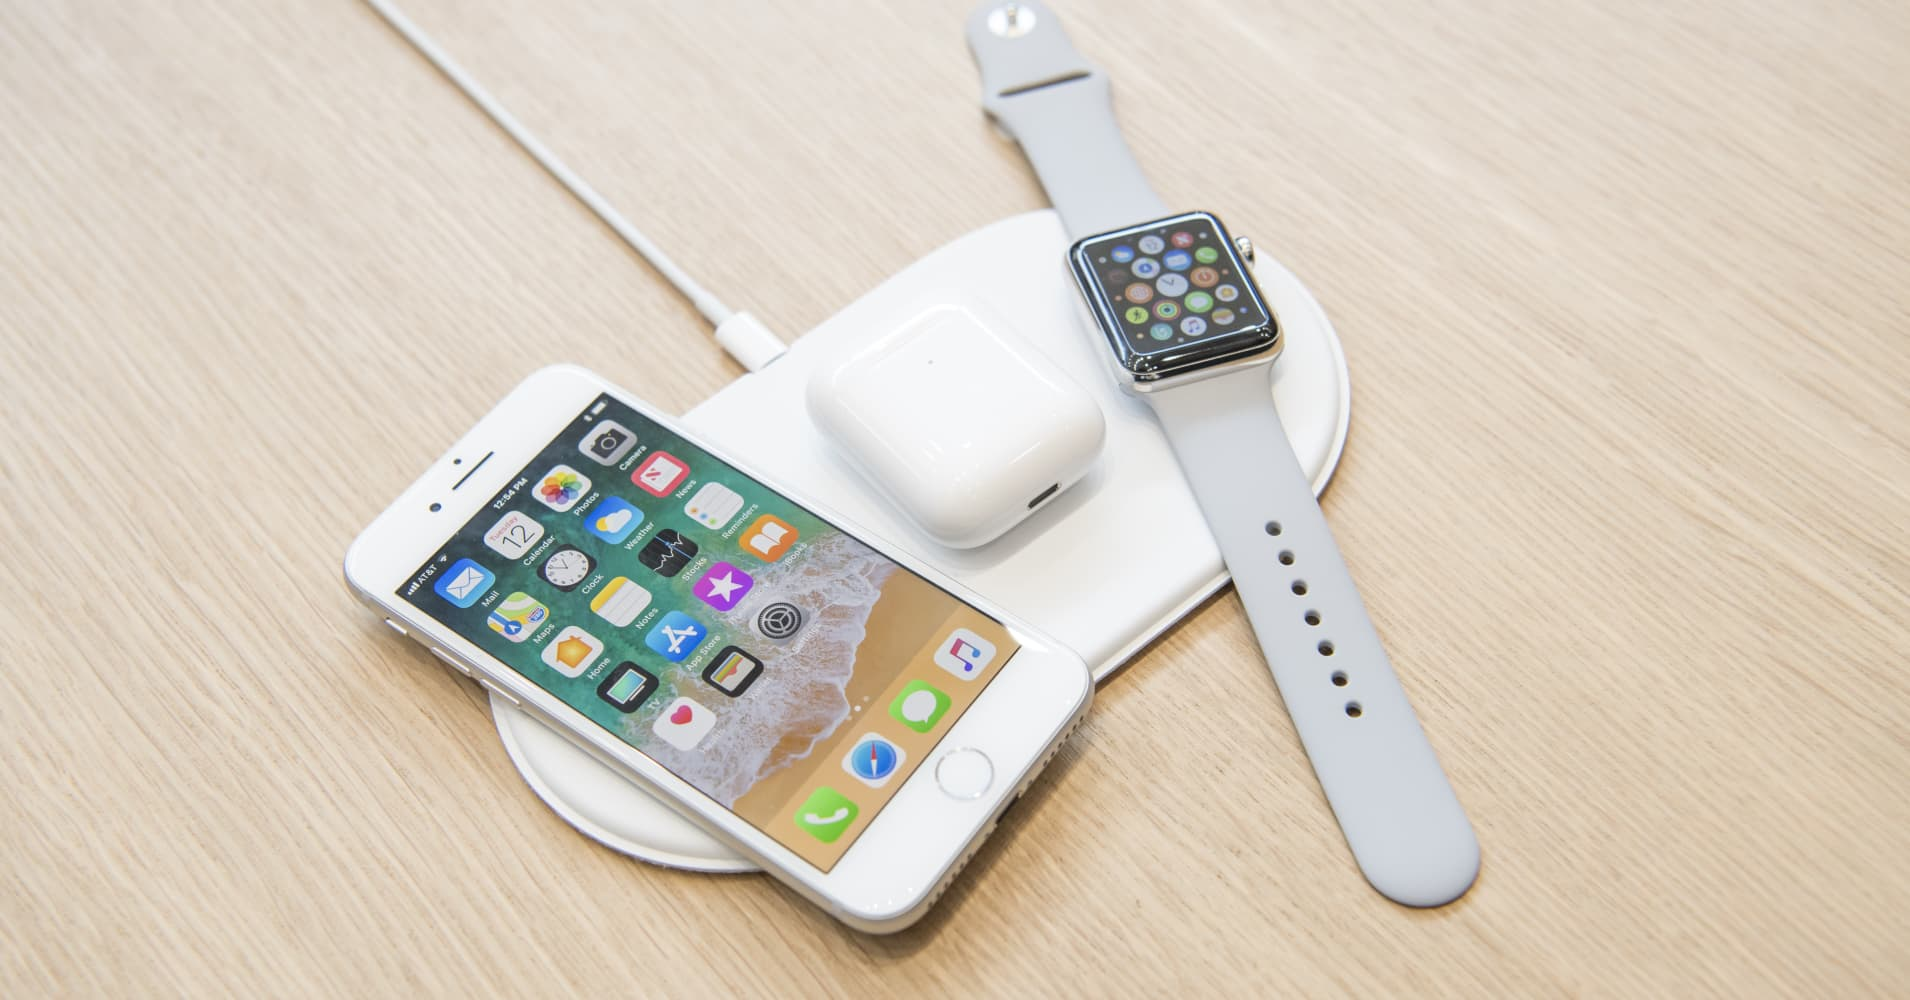 Apple cancels AirPower, the wireless charging pad it announced over a year ago